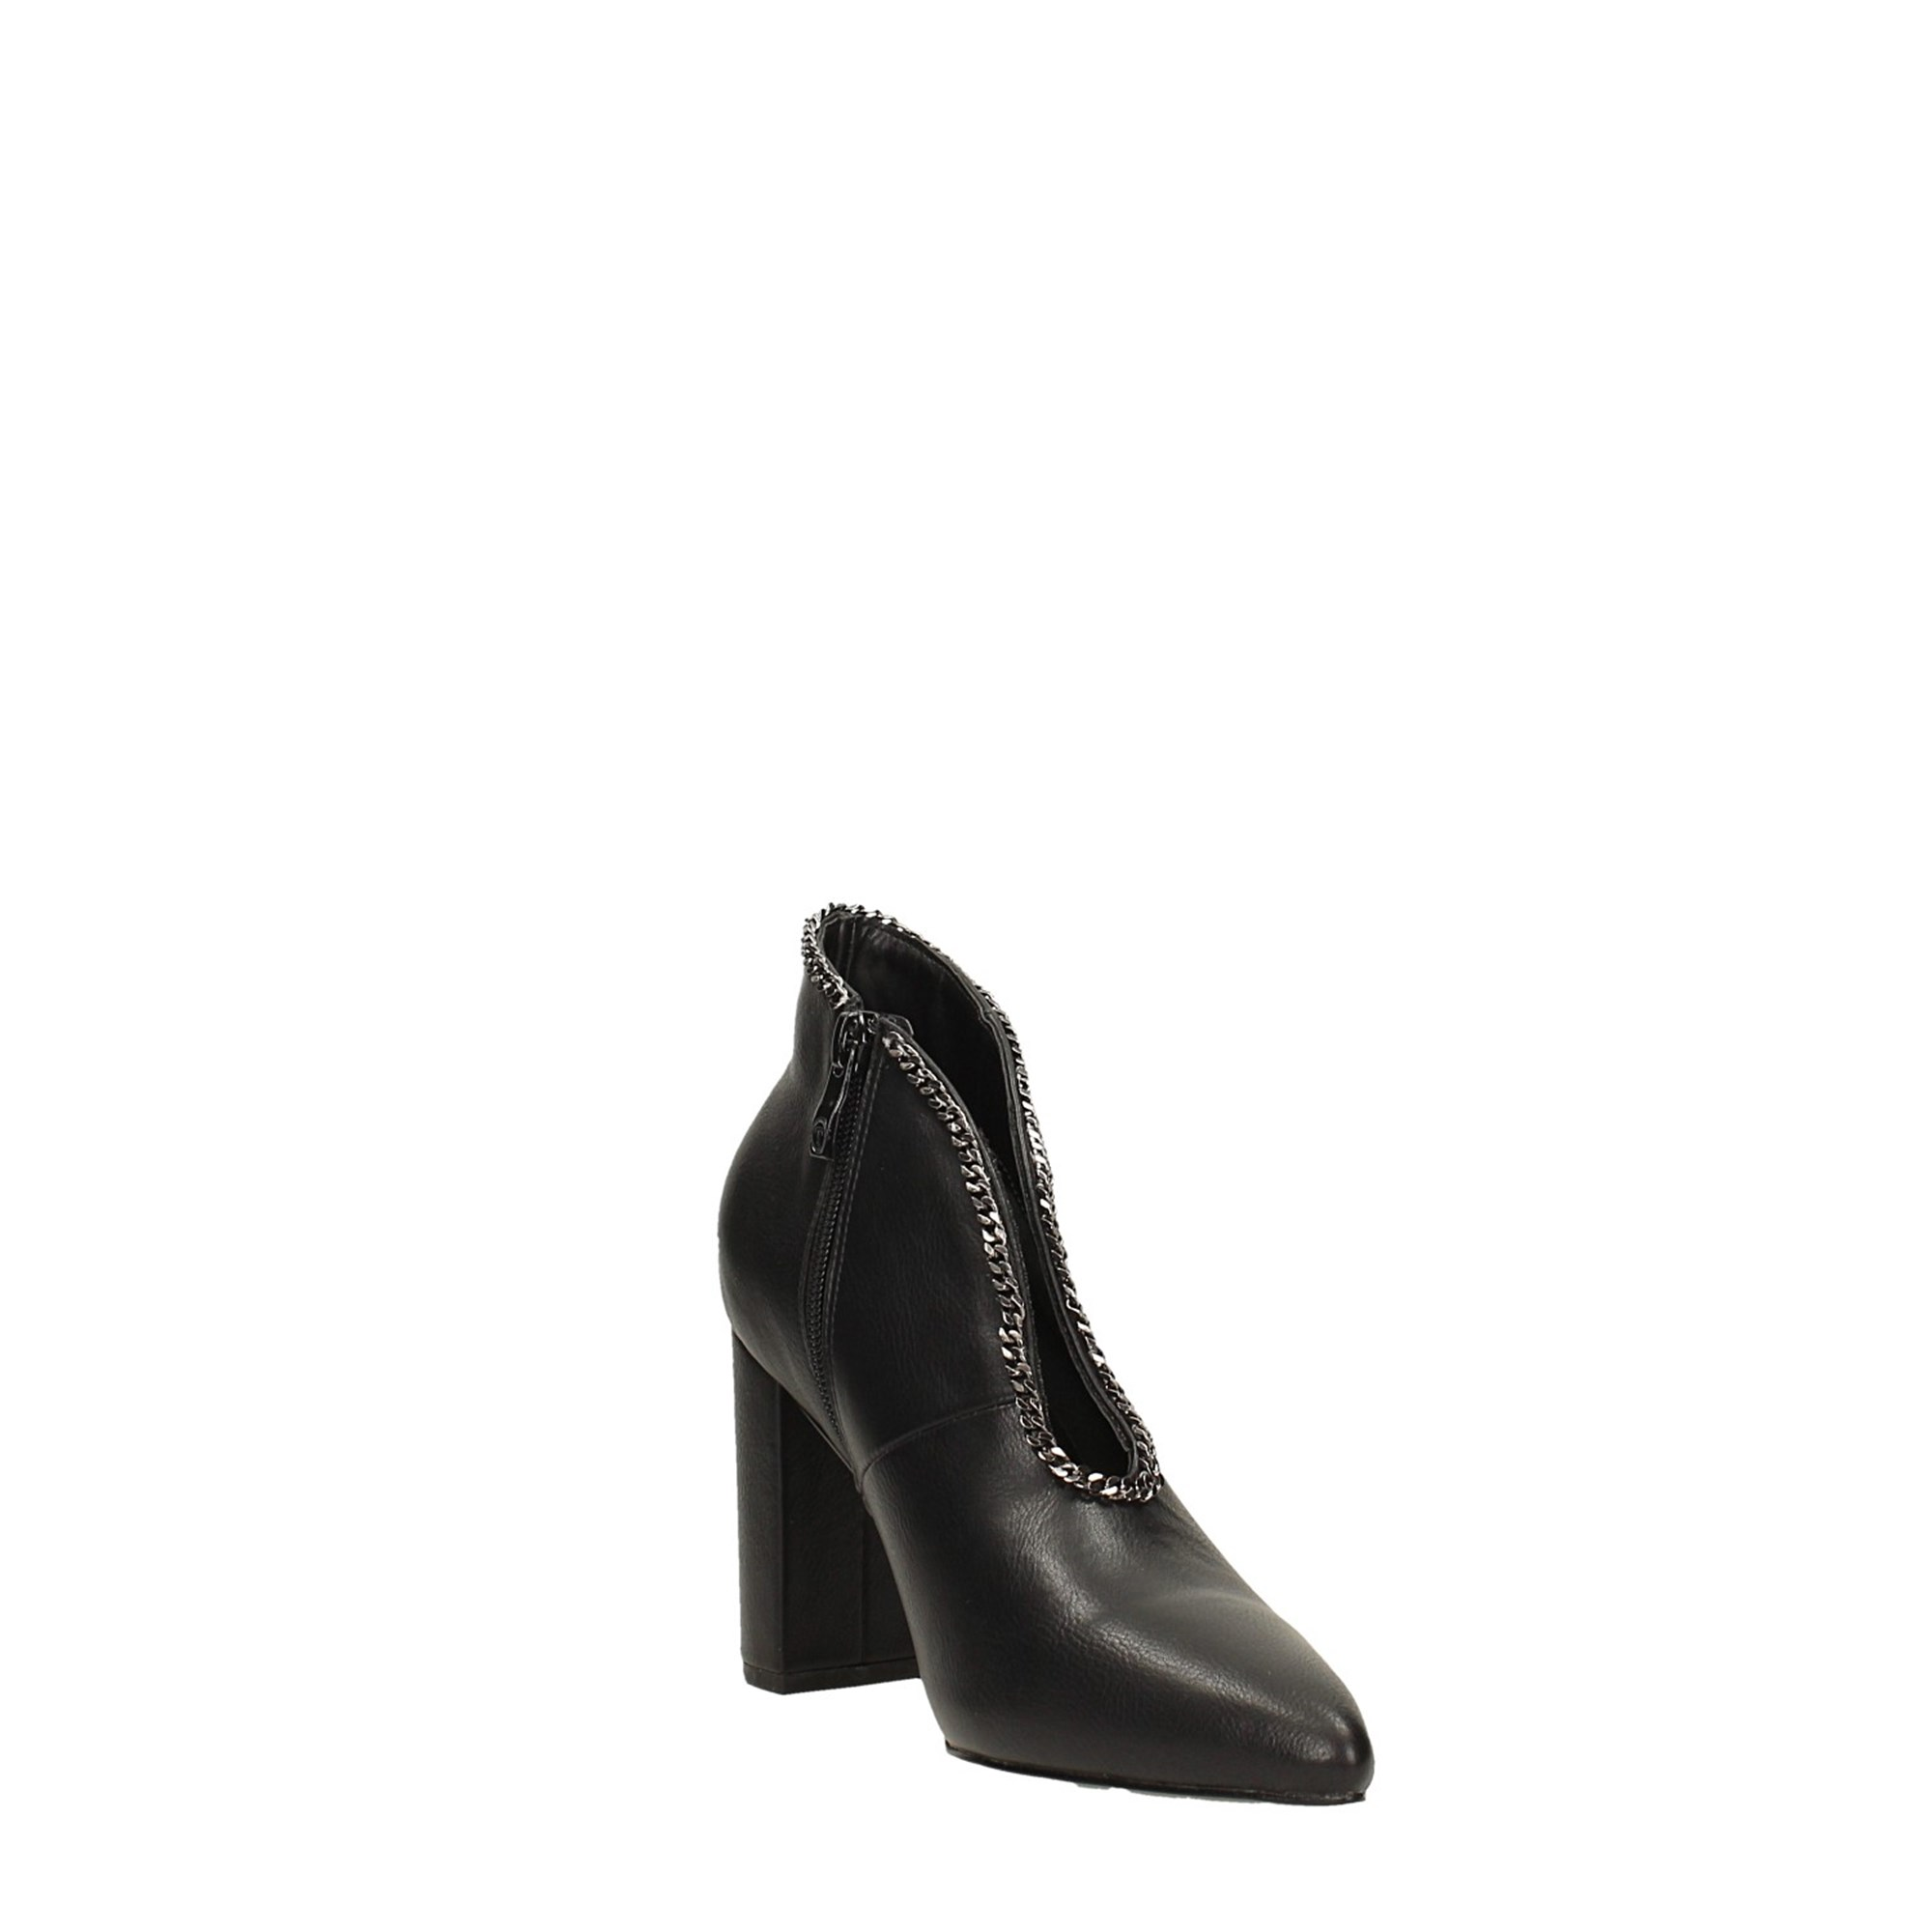 Tata Italia Shoes Woman Stivaletti 2062B-24-K